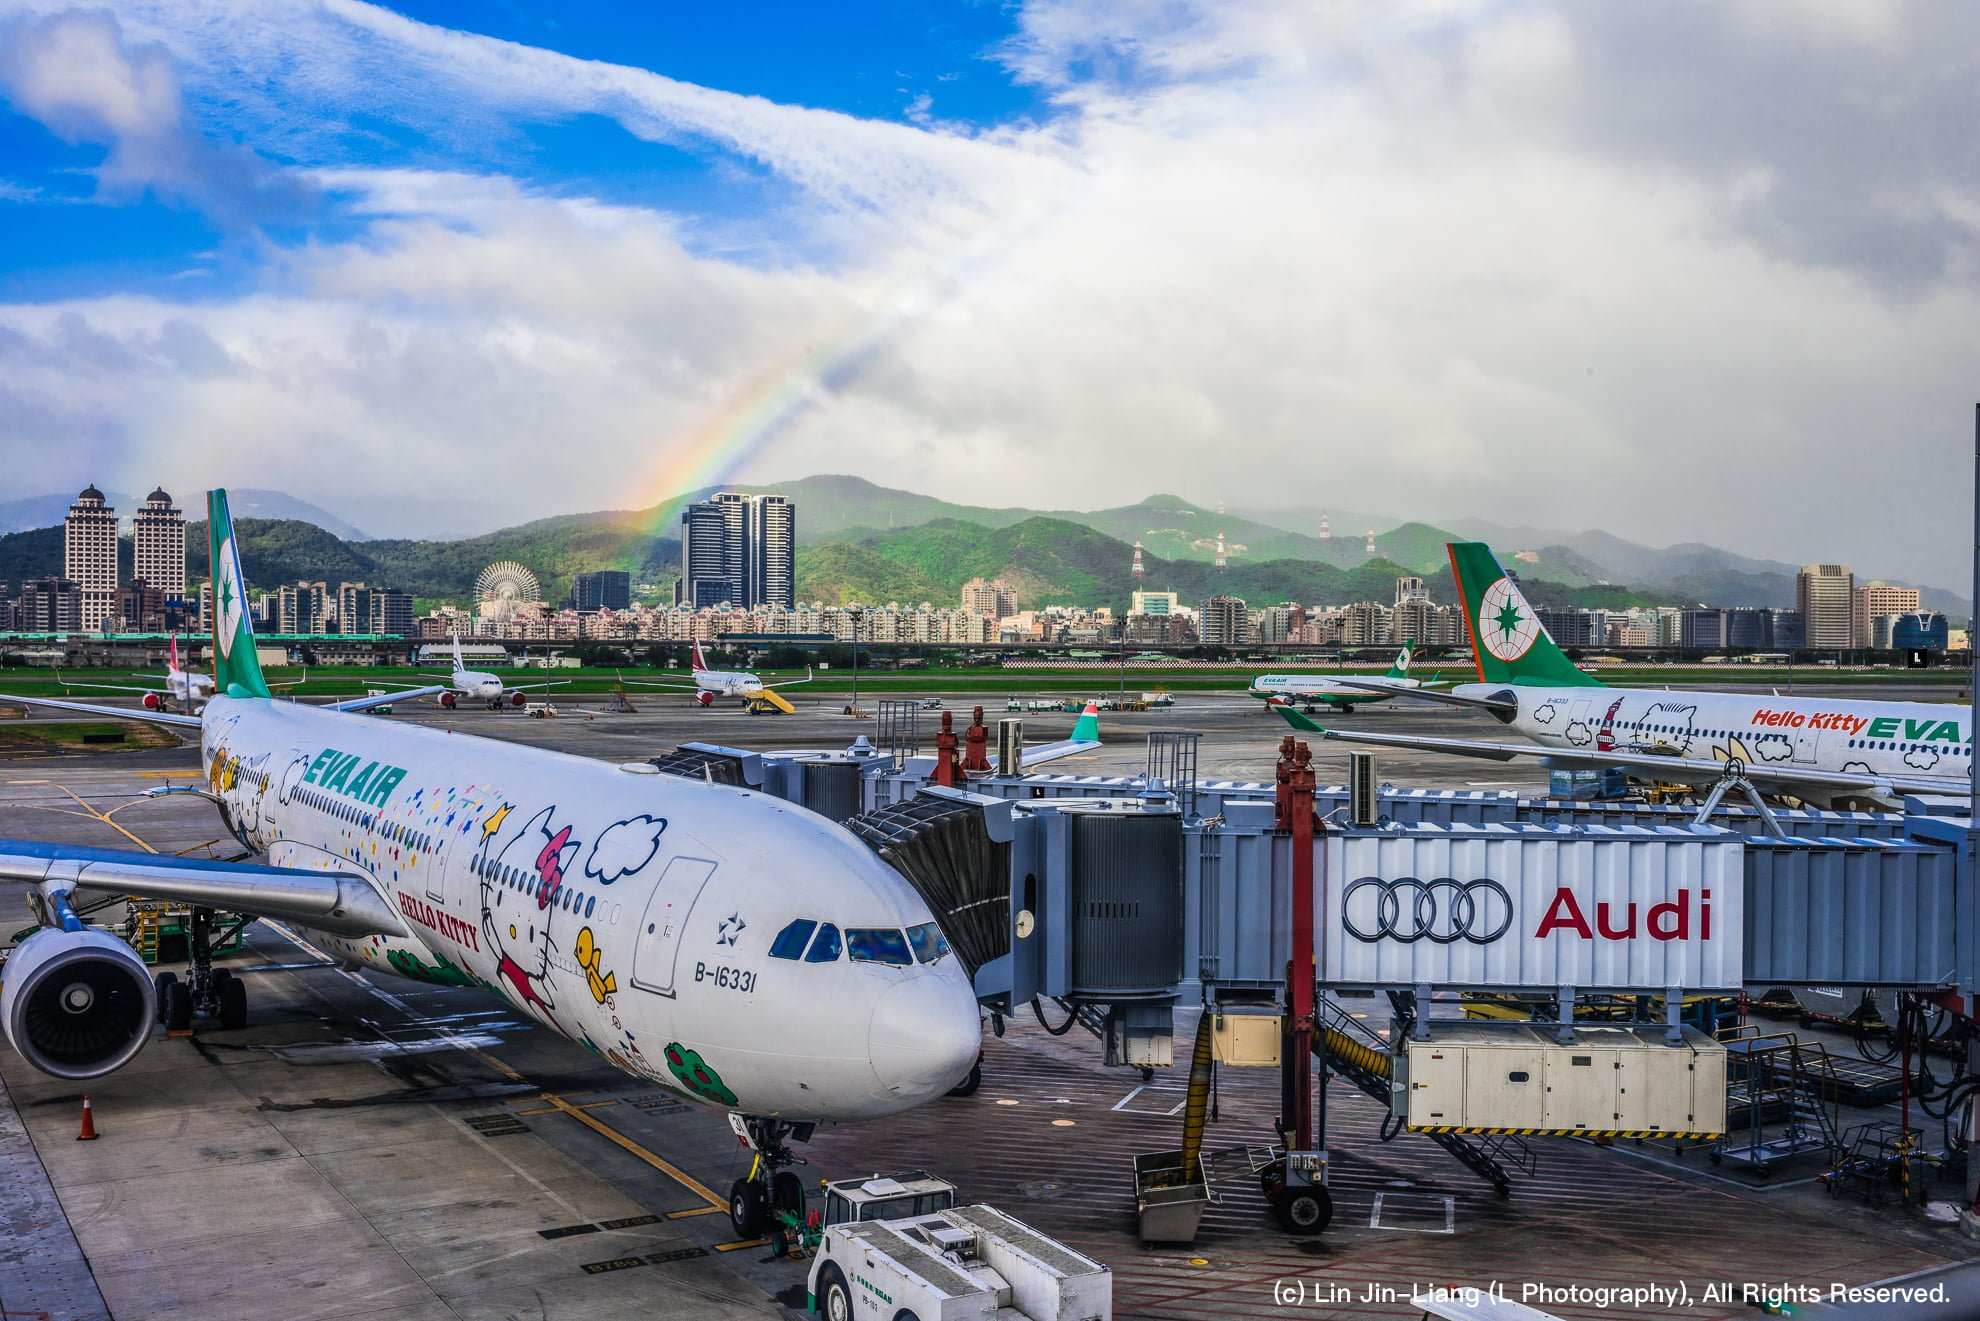 EverGreen Airline Hello Kitty Rainbow Taipei Songshan Airport 長榮航空 彩虹 松山機場